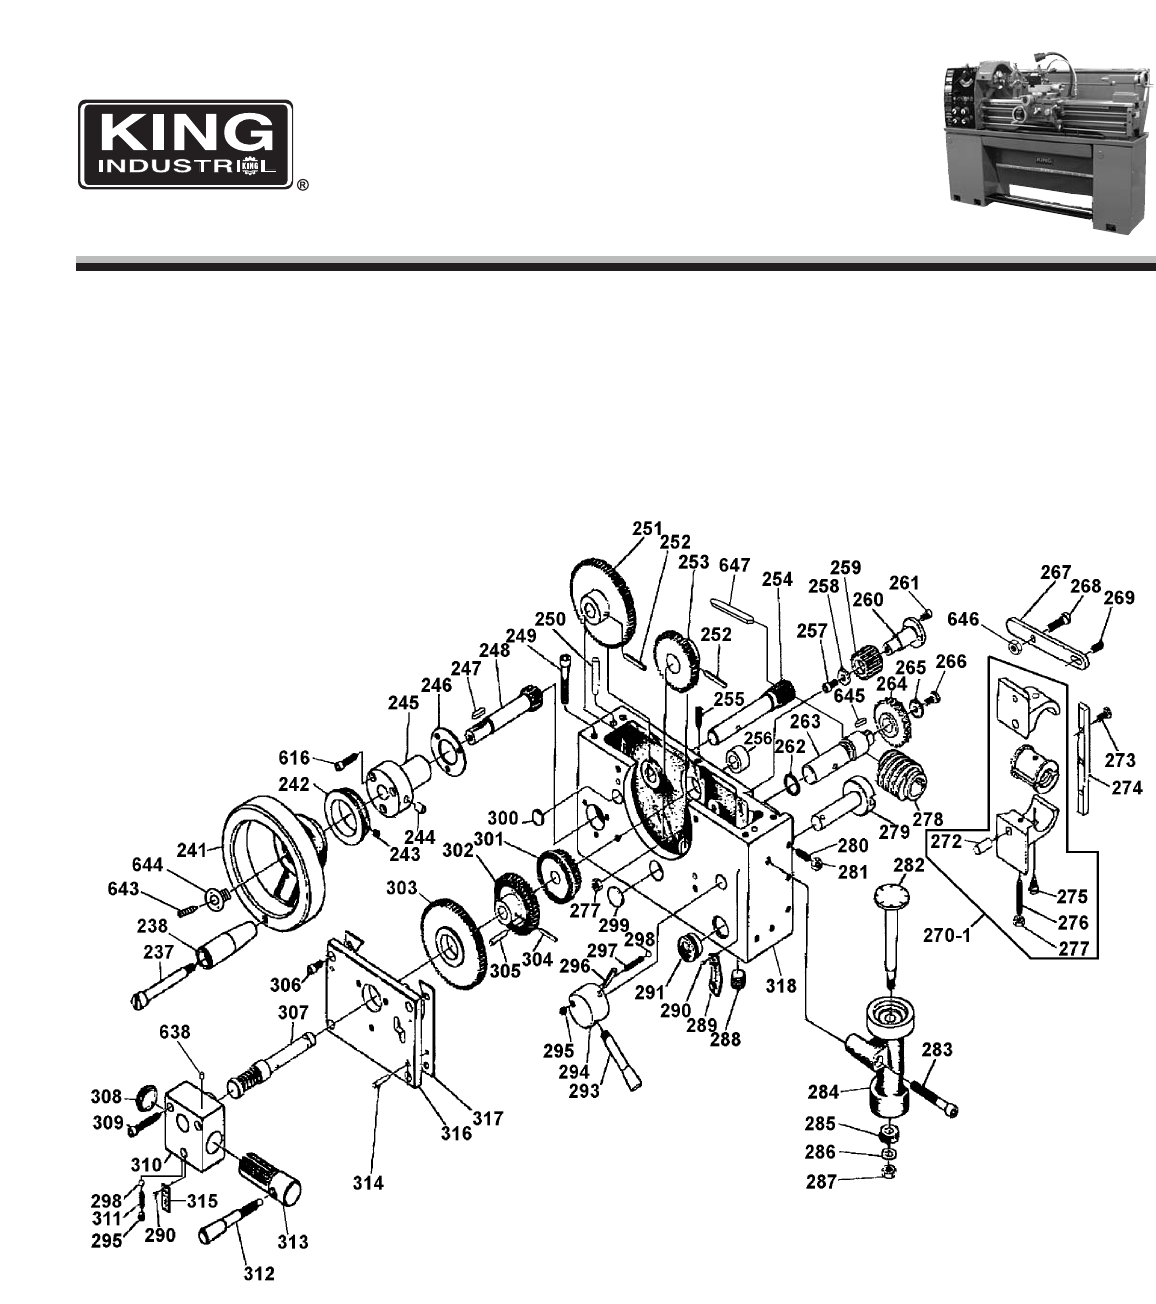 Page 4 of King Canada Lathe KC-1440ML-6 User Guide